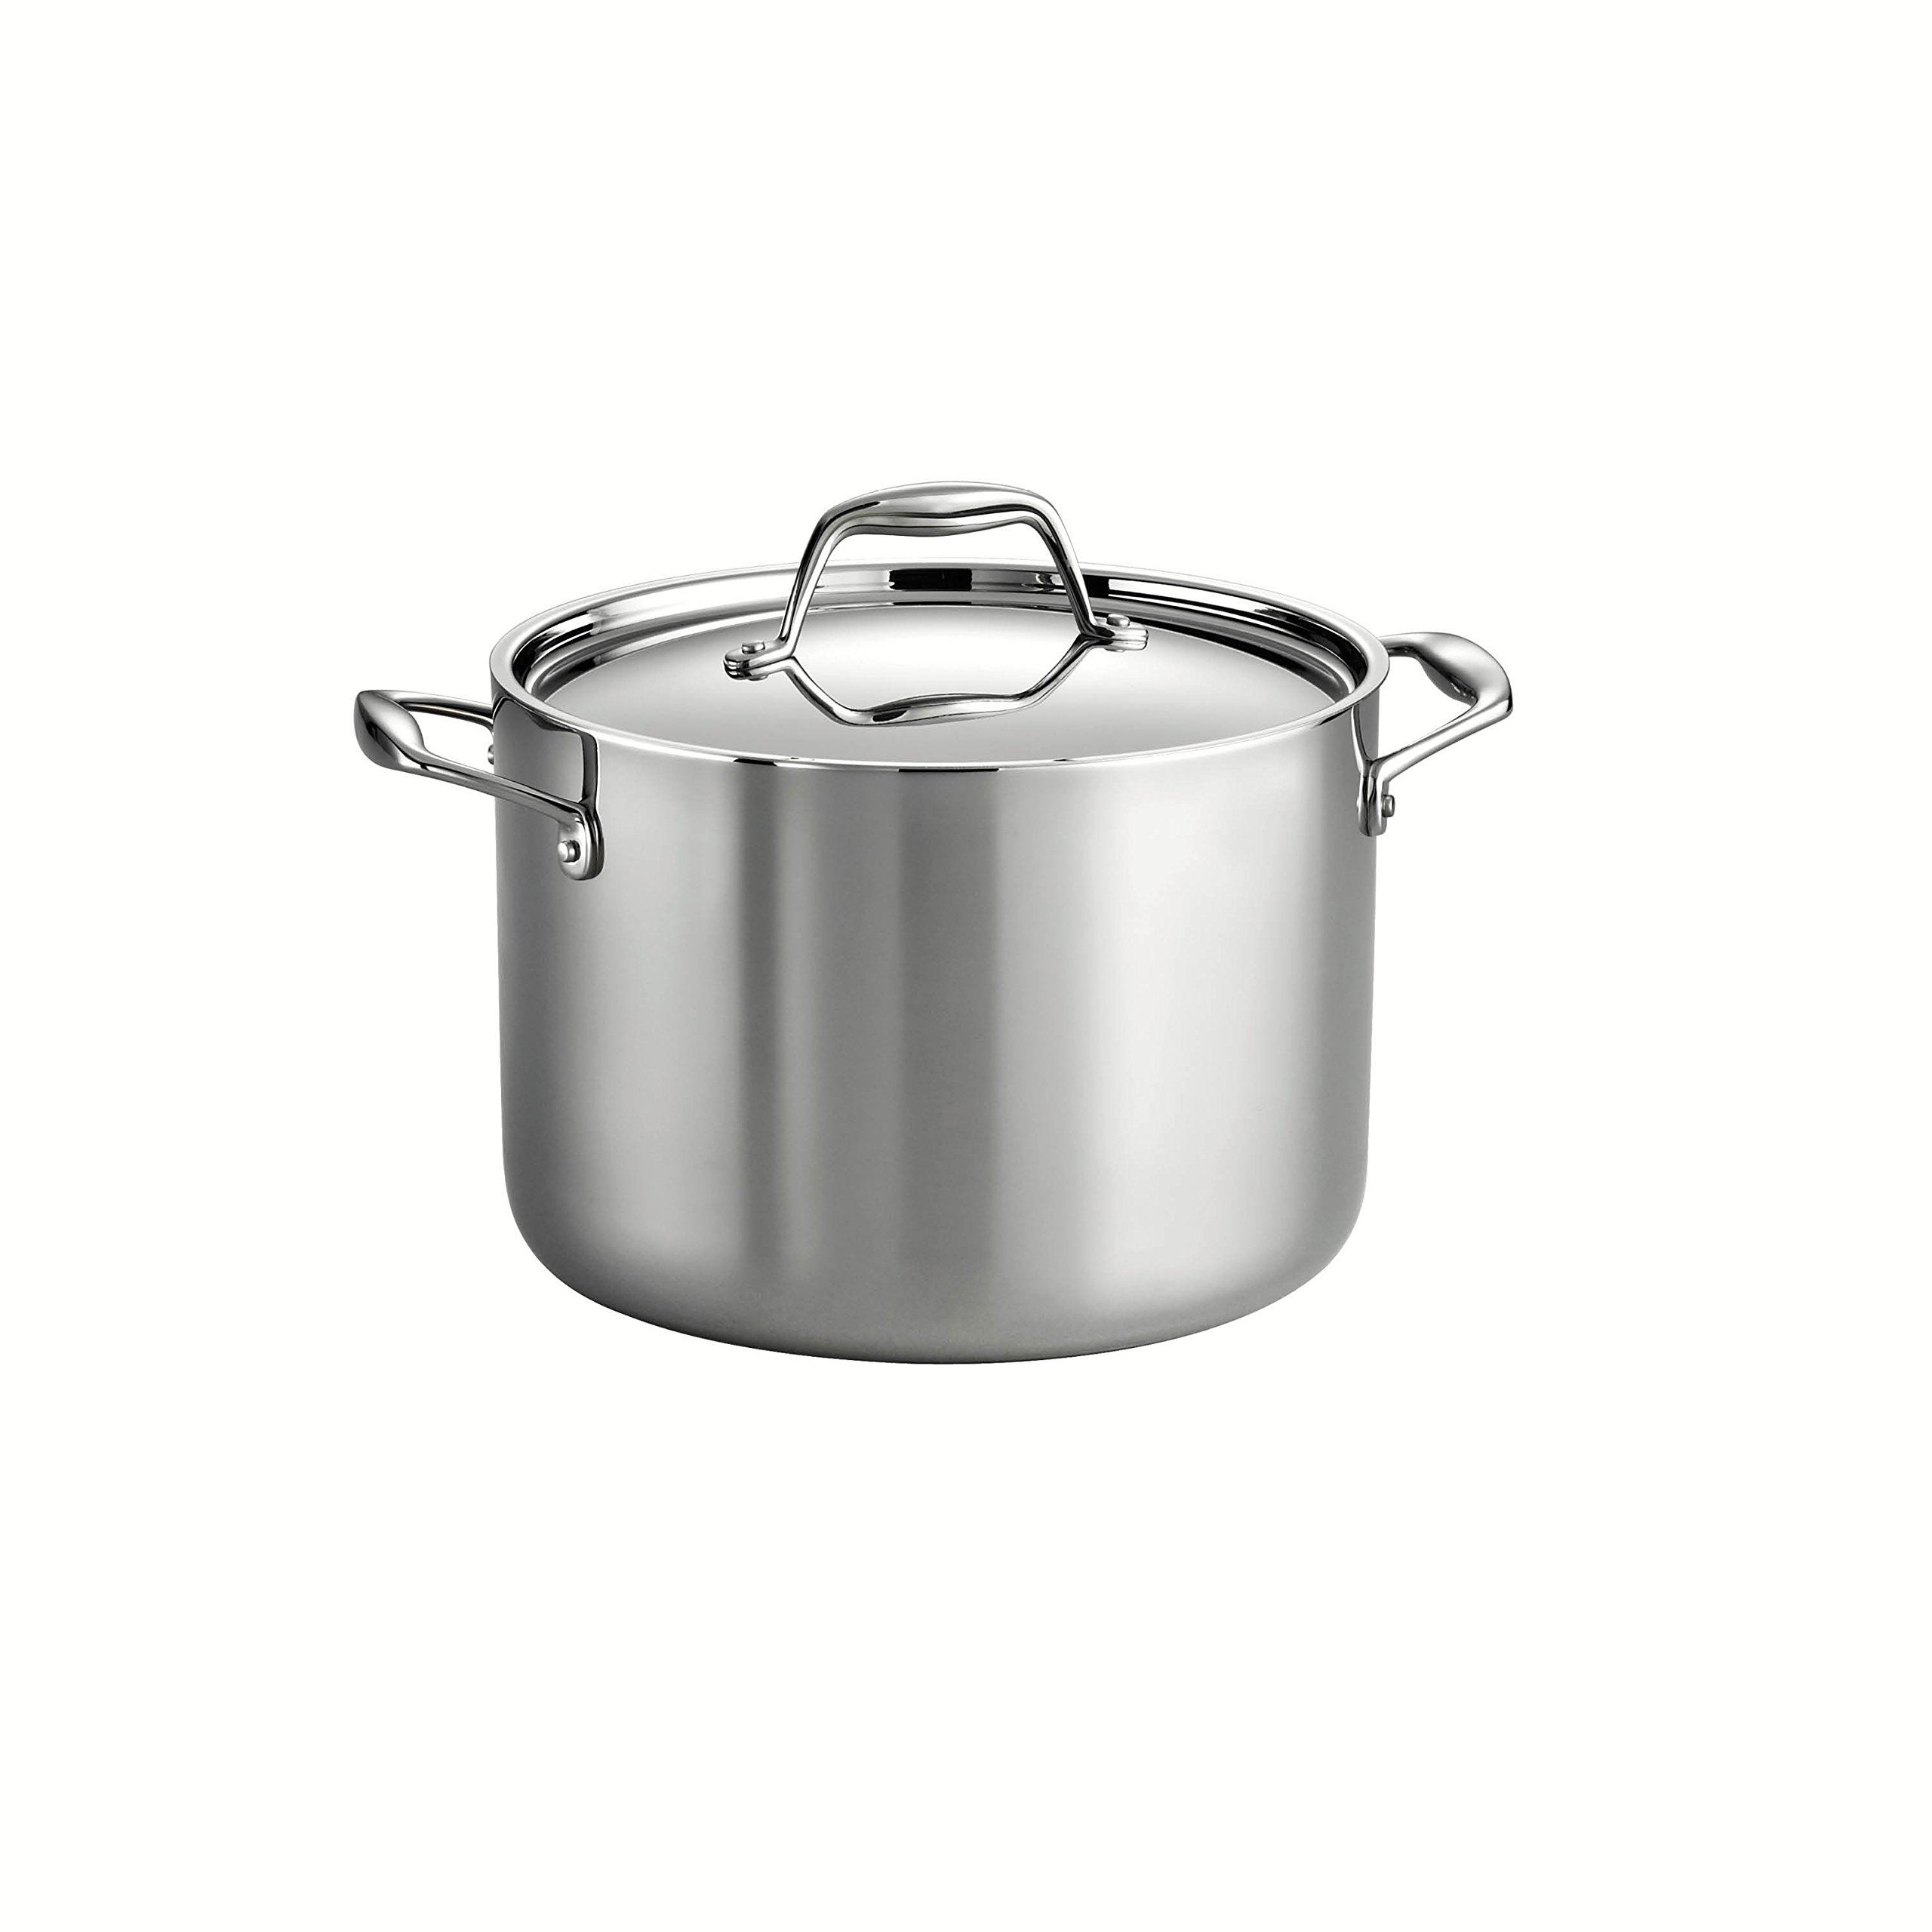 Tramontina 80116/041DS Gourmet 18/10 Stainless Steel Induction-Ready Tri-Ply Clad Covered Stock Pot, 8-Quart, NSF-Certified, Made in Brazil by Tramontina (Image #1)